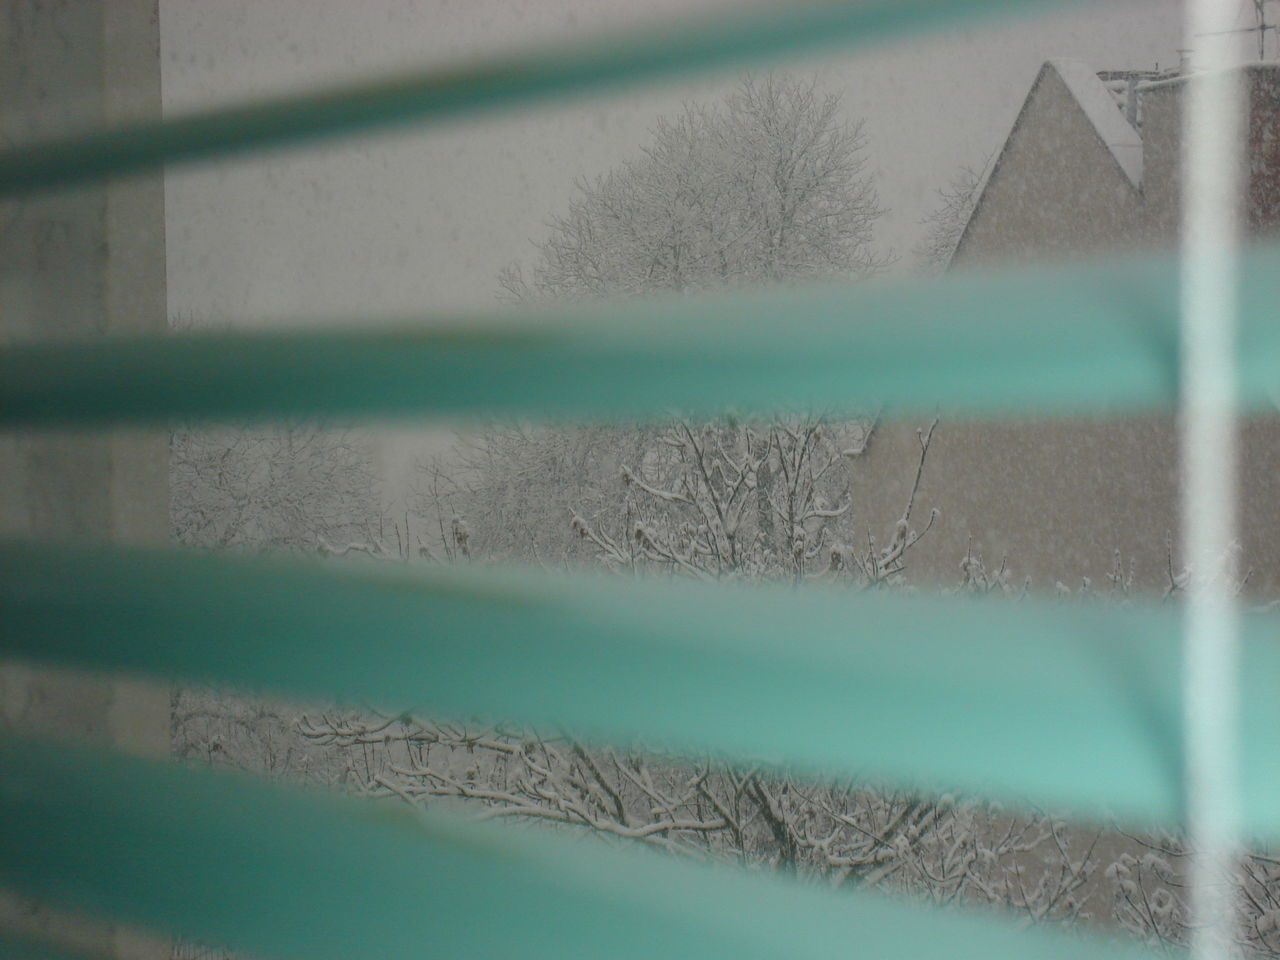 Day No People Outdoors Snowing Snowing Day Snowing Outside Snowing ❄ Weather Window Window View Winter Wintertime